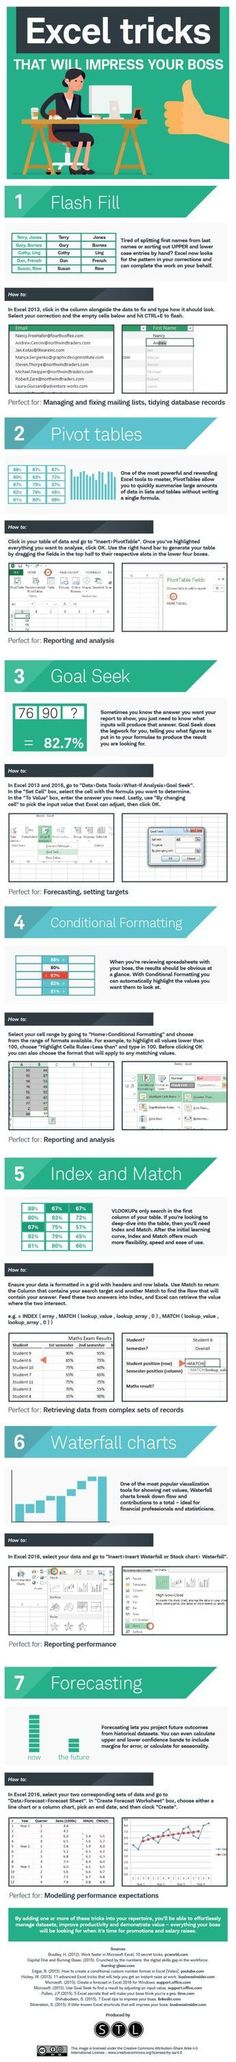 Accounts Payable Ledger Microsoft excel - small business spreadsheet template